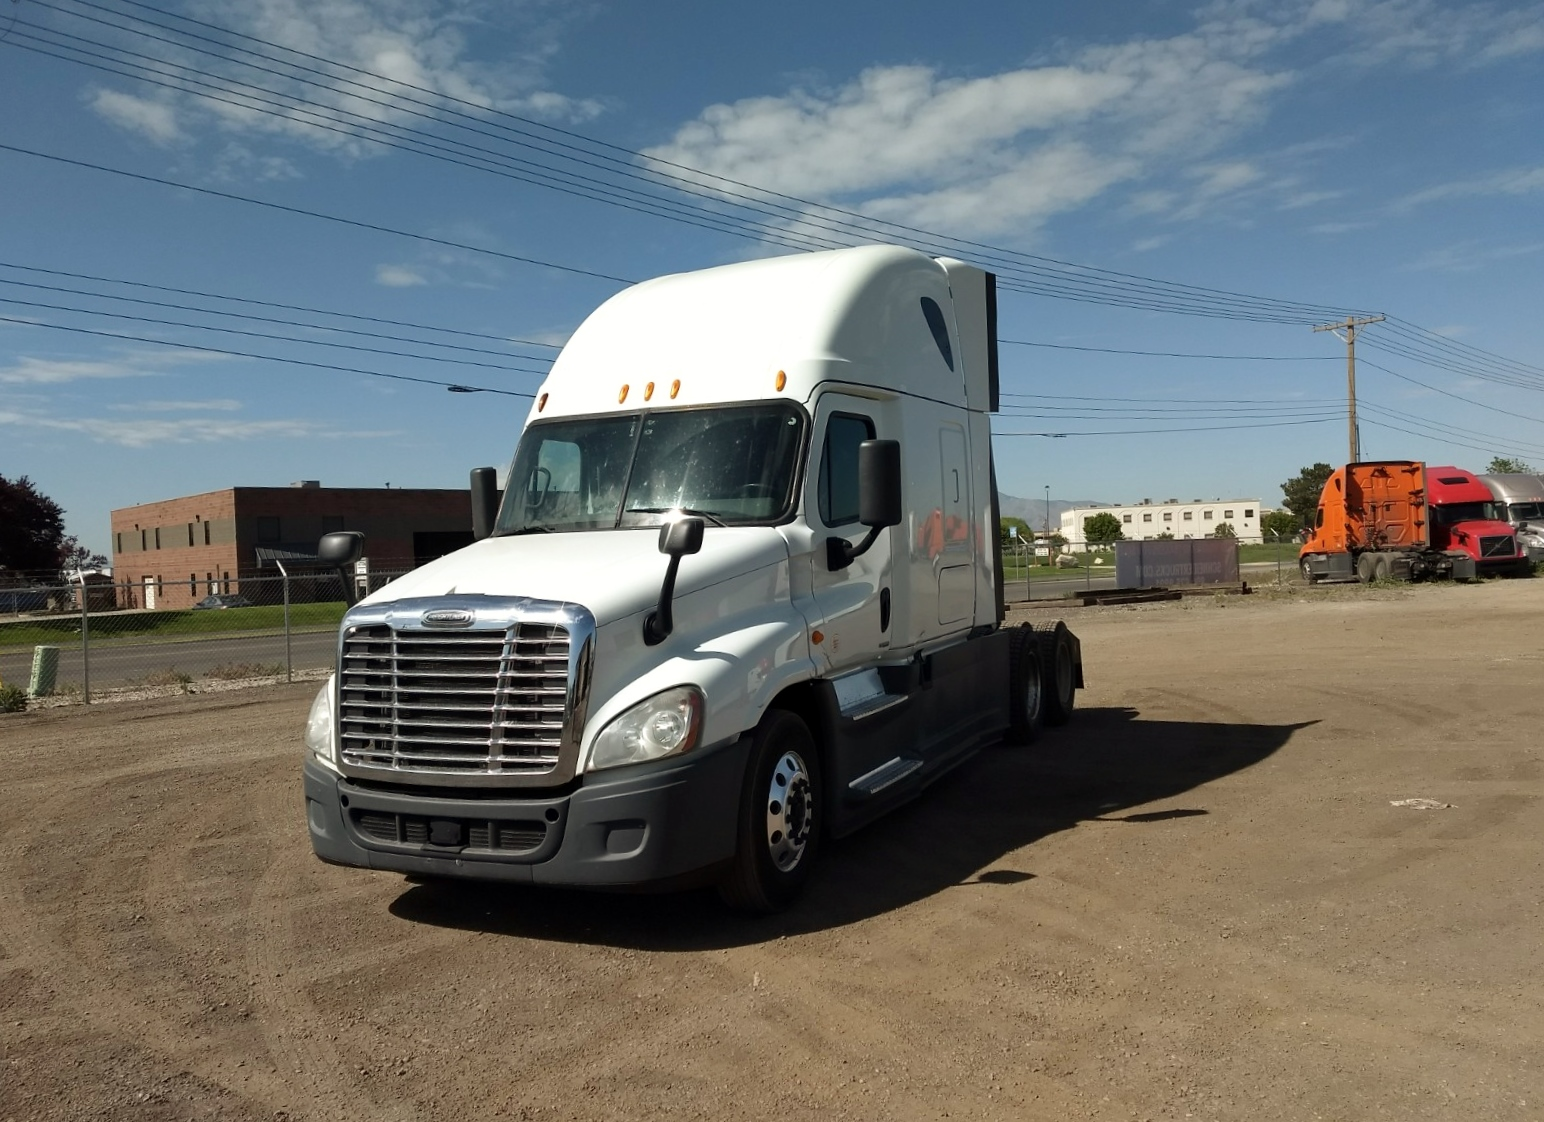 USED 2014 FREIGHTLINER CASCADIA SLEEPER TRUCK #123580